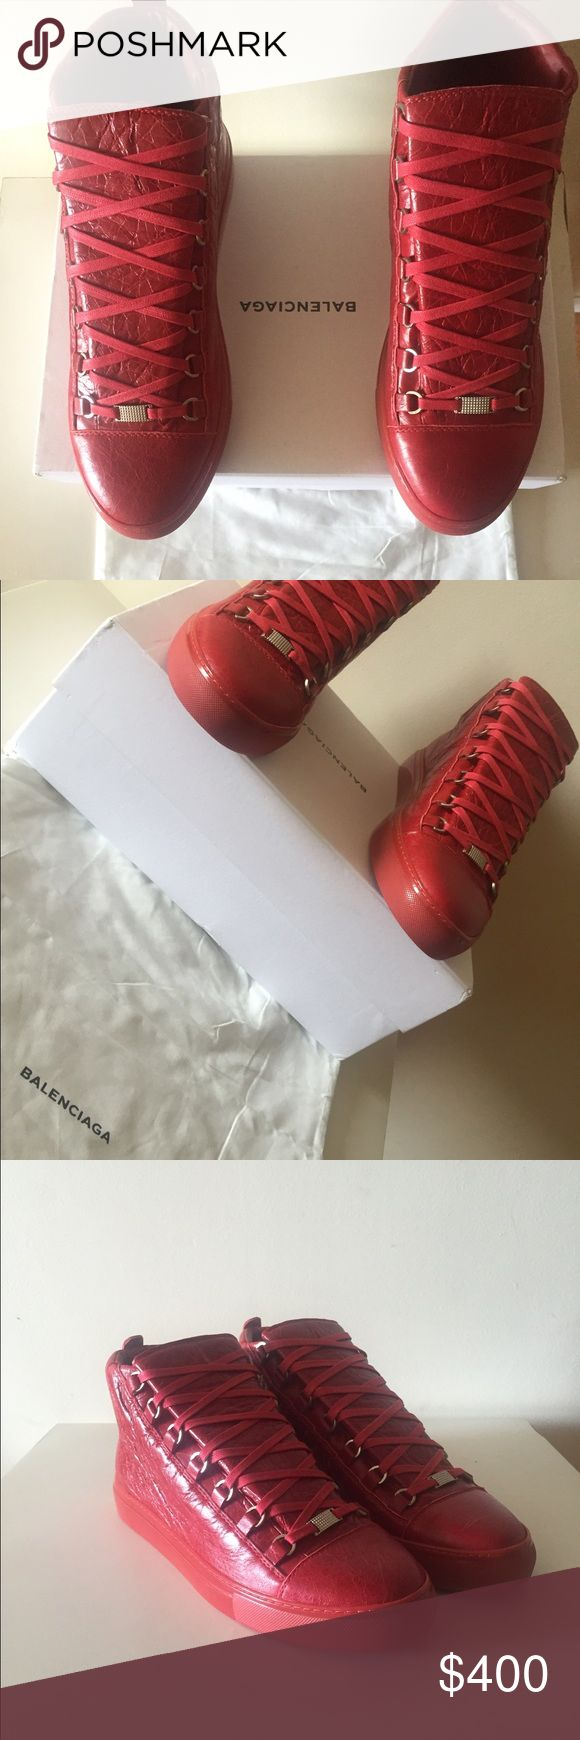 balenciaga arena sneakers red high top shoes US 11 authentic and never worn , comes with original box and original dustbag. size EU 44 US 11 Balenciaga Shoes Sneakers